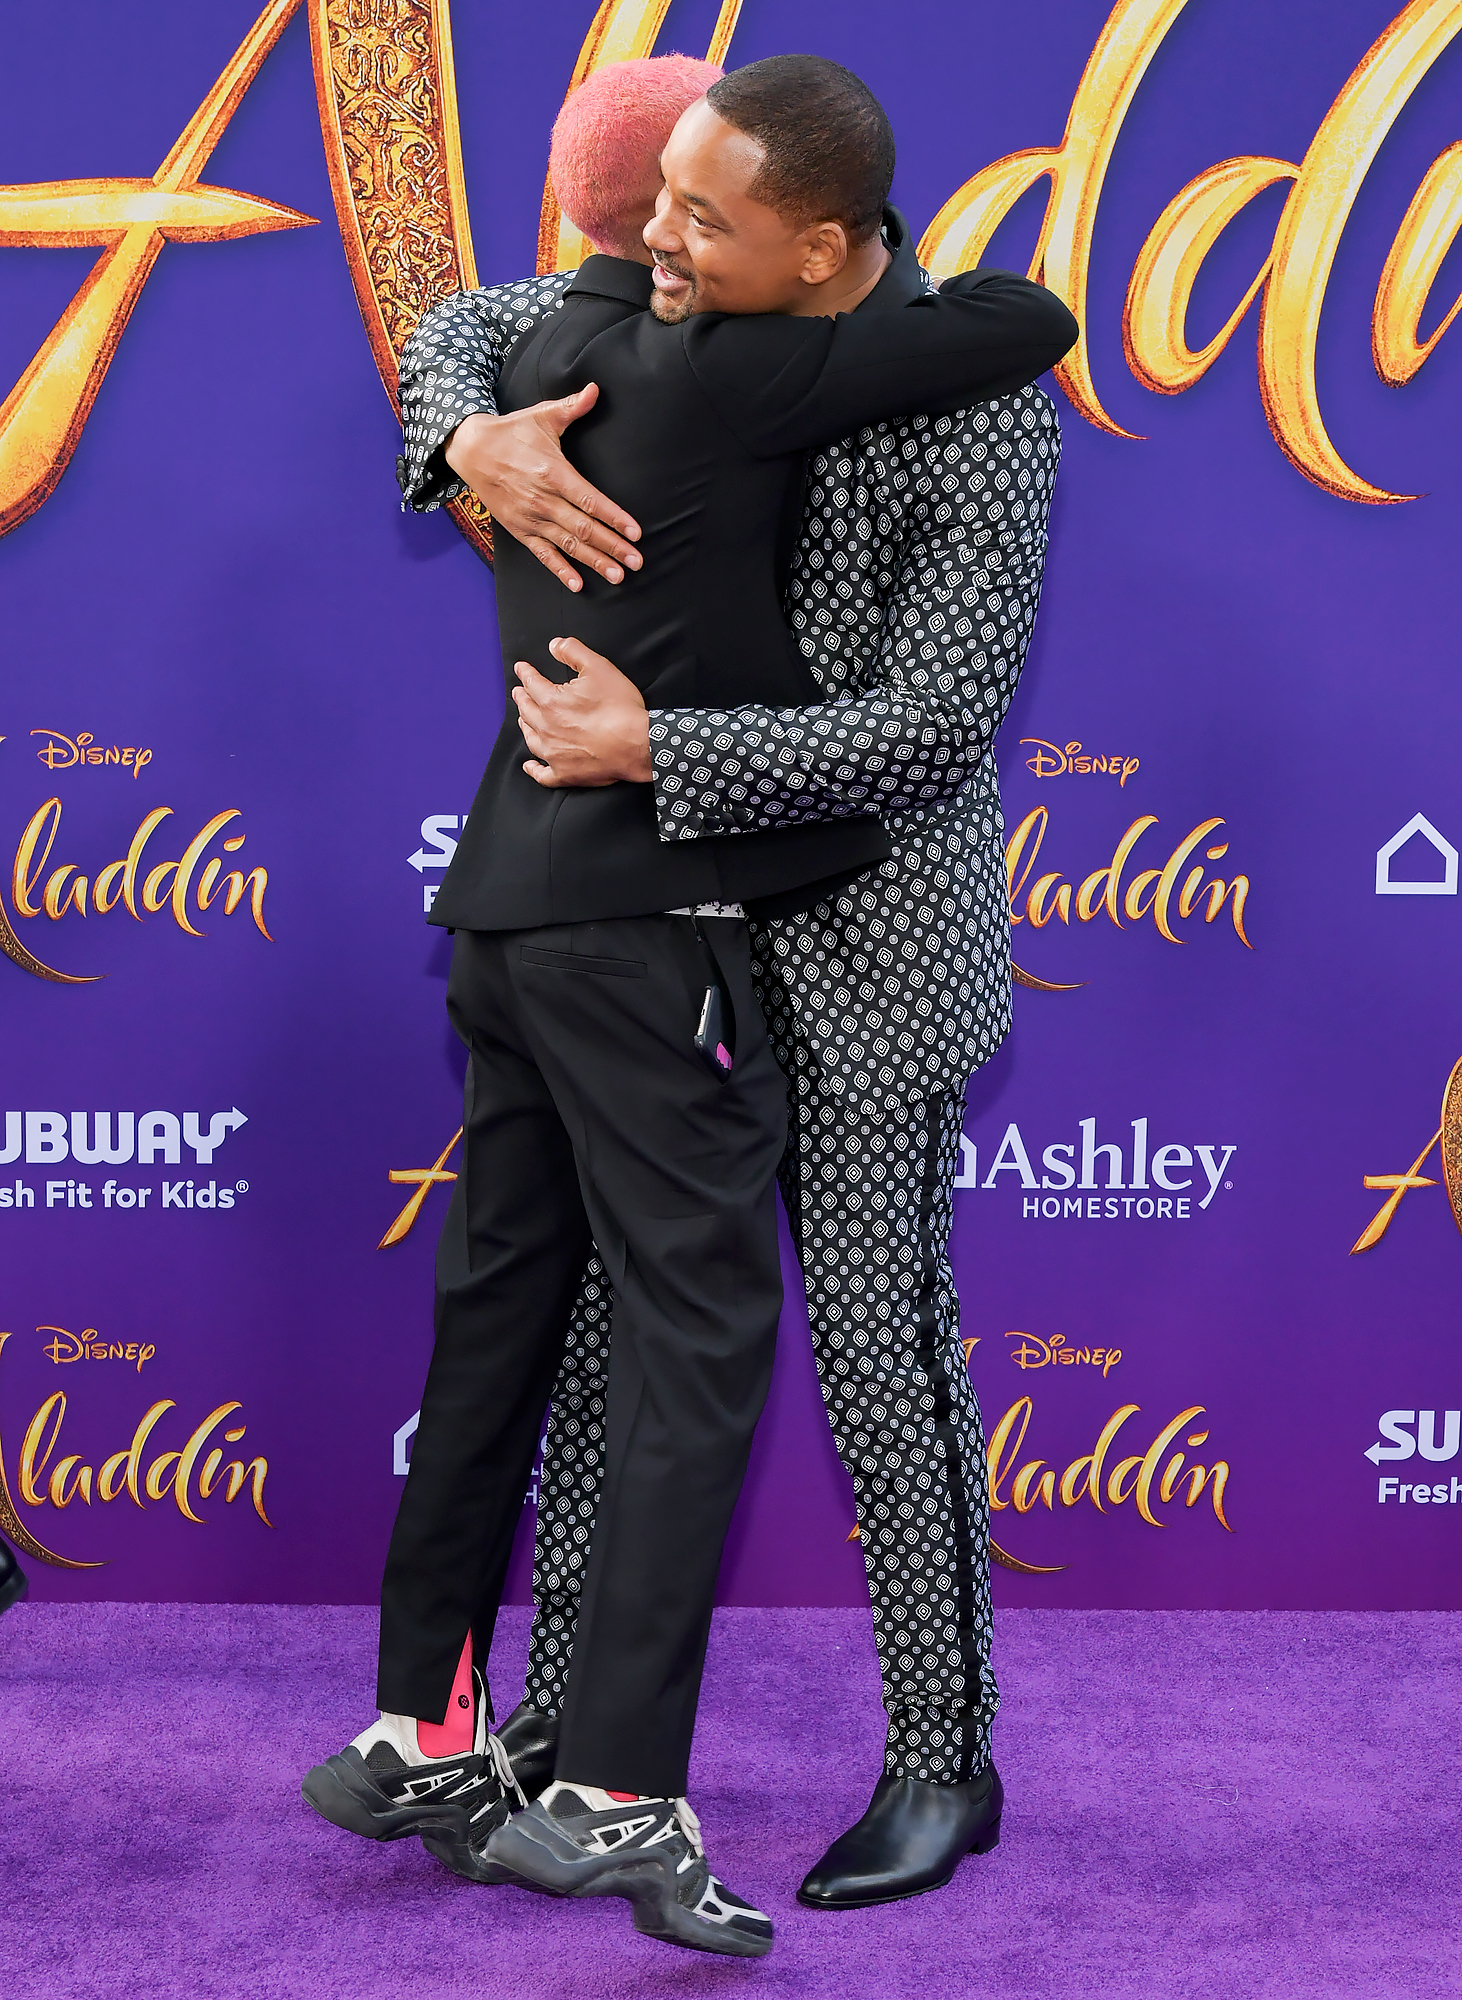 Jaden-Smith-Will-Smith-Aladdin-premiere - Jaden, who rocked pink hair, hugged his father on the purple carpet.